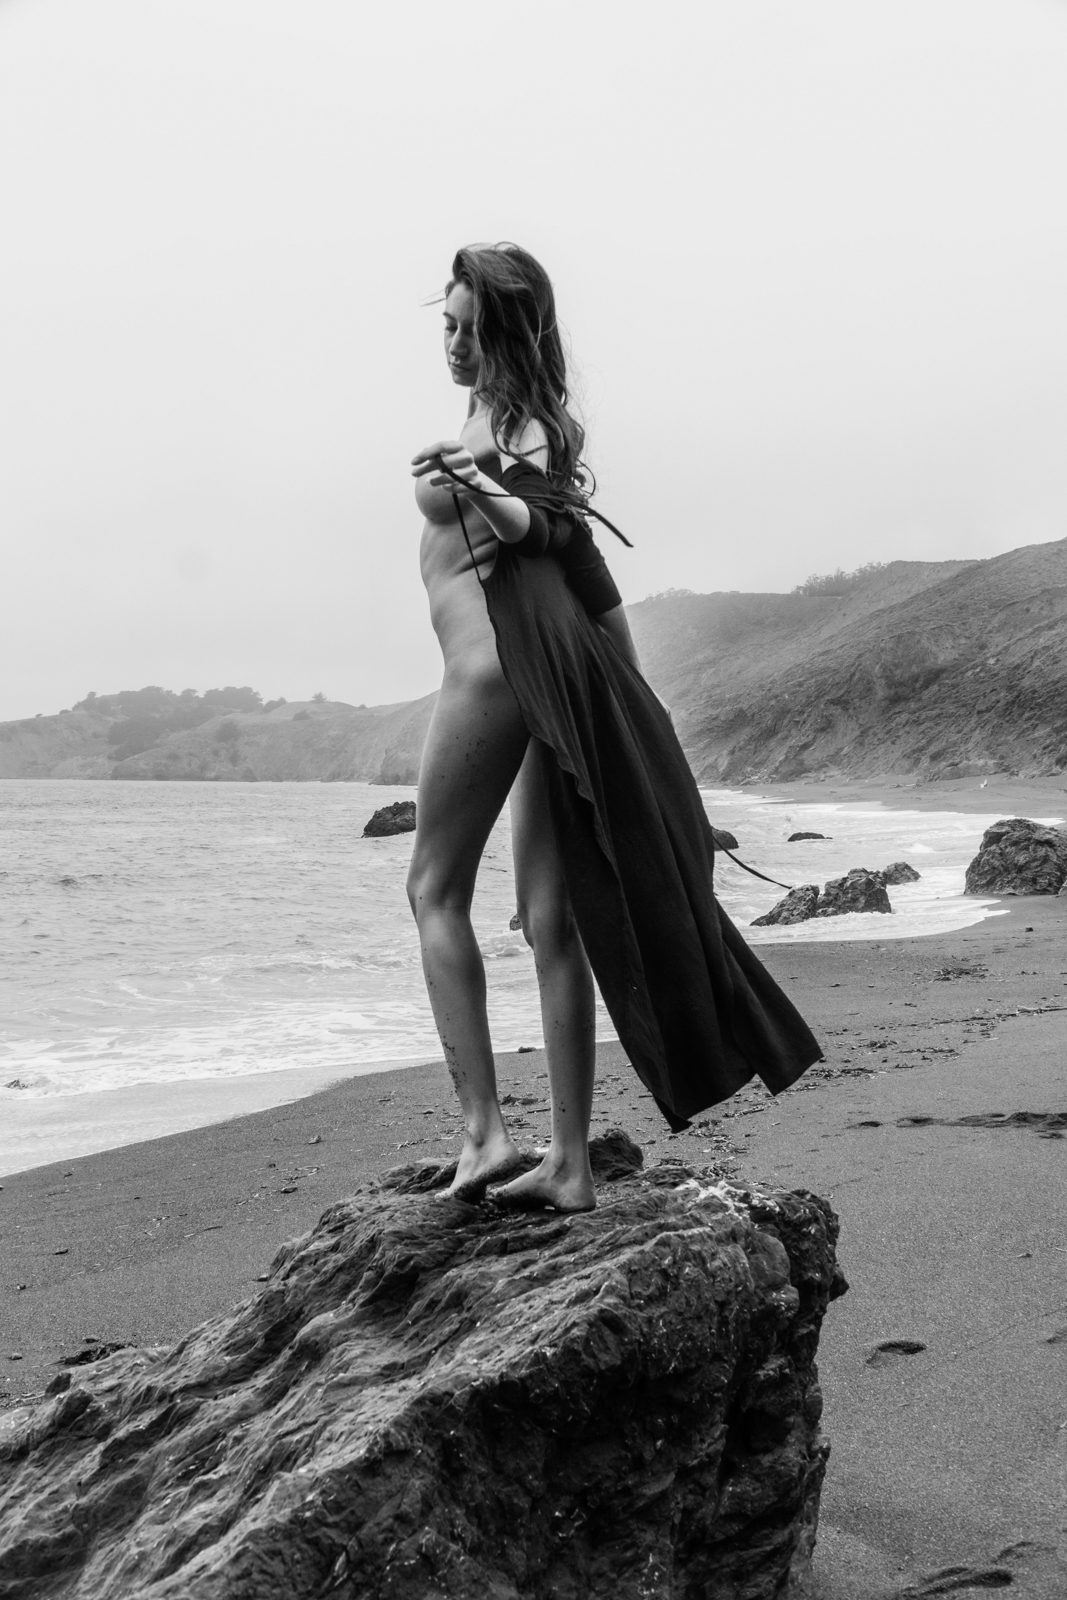 Celeste - Black Beach Women    // lionsmag.com - premium nude photography magazine